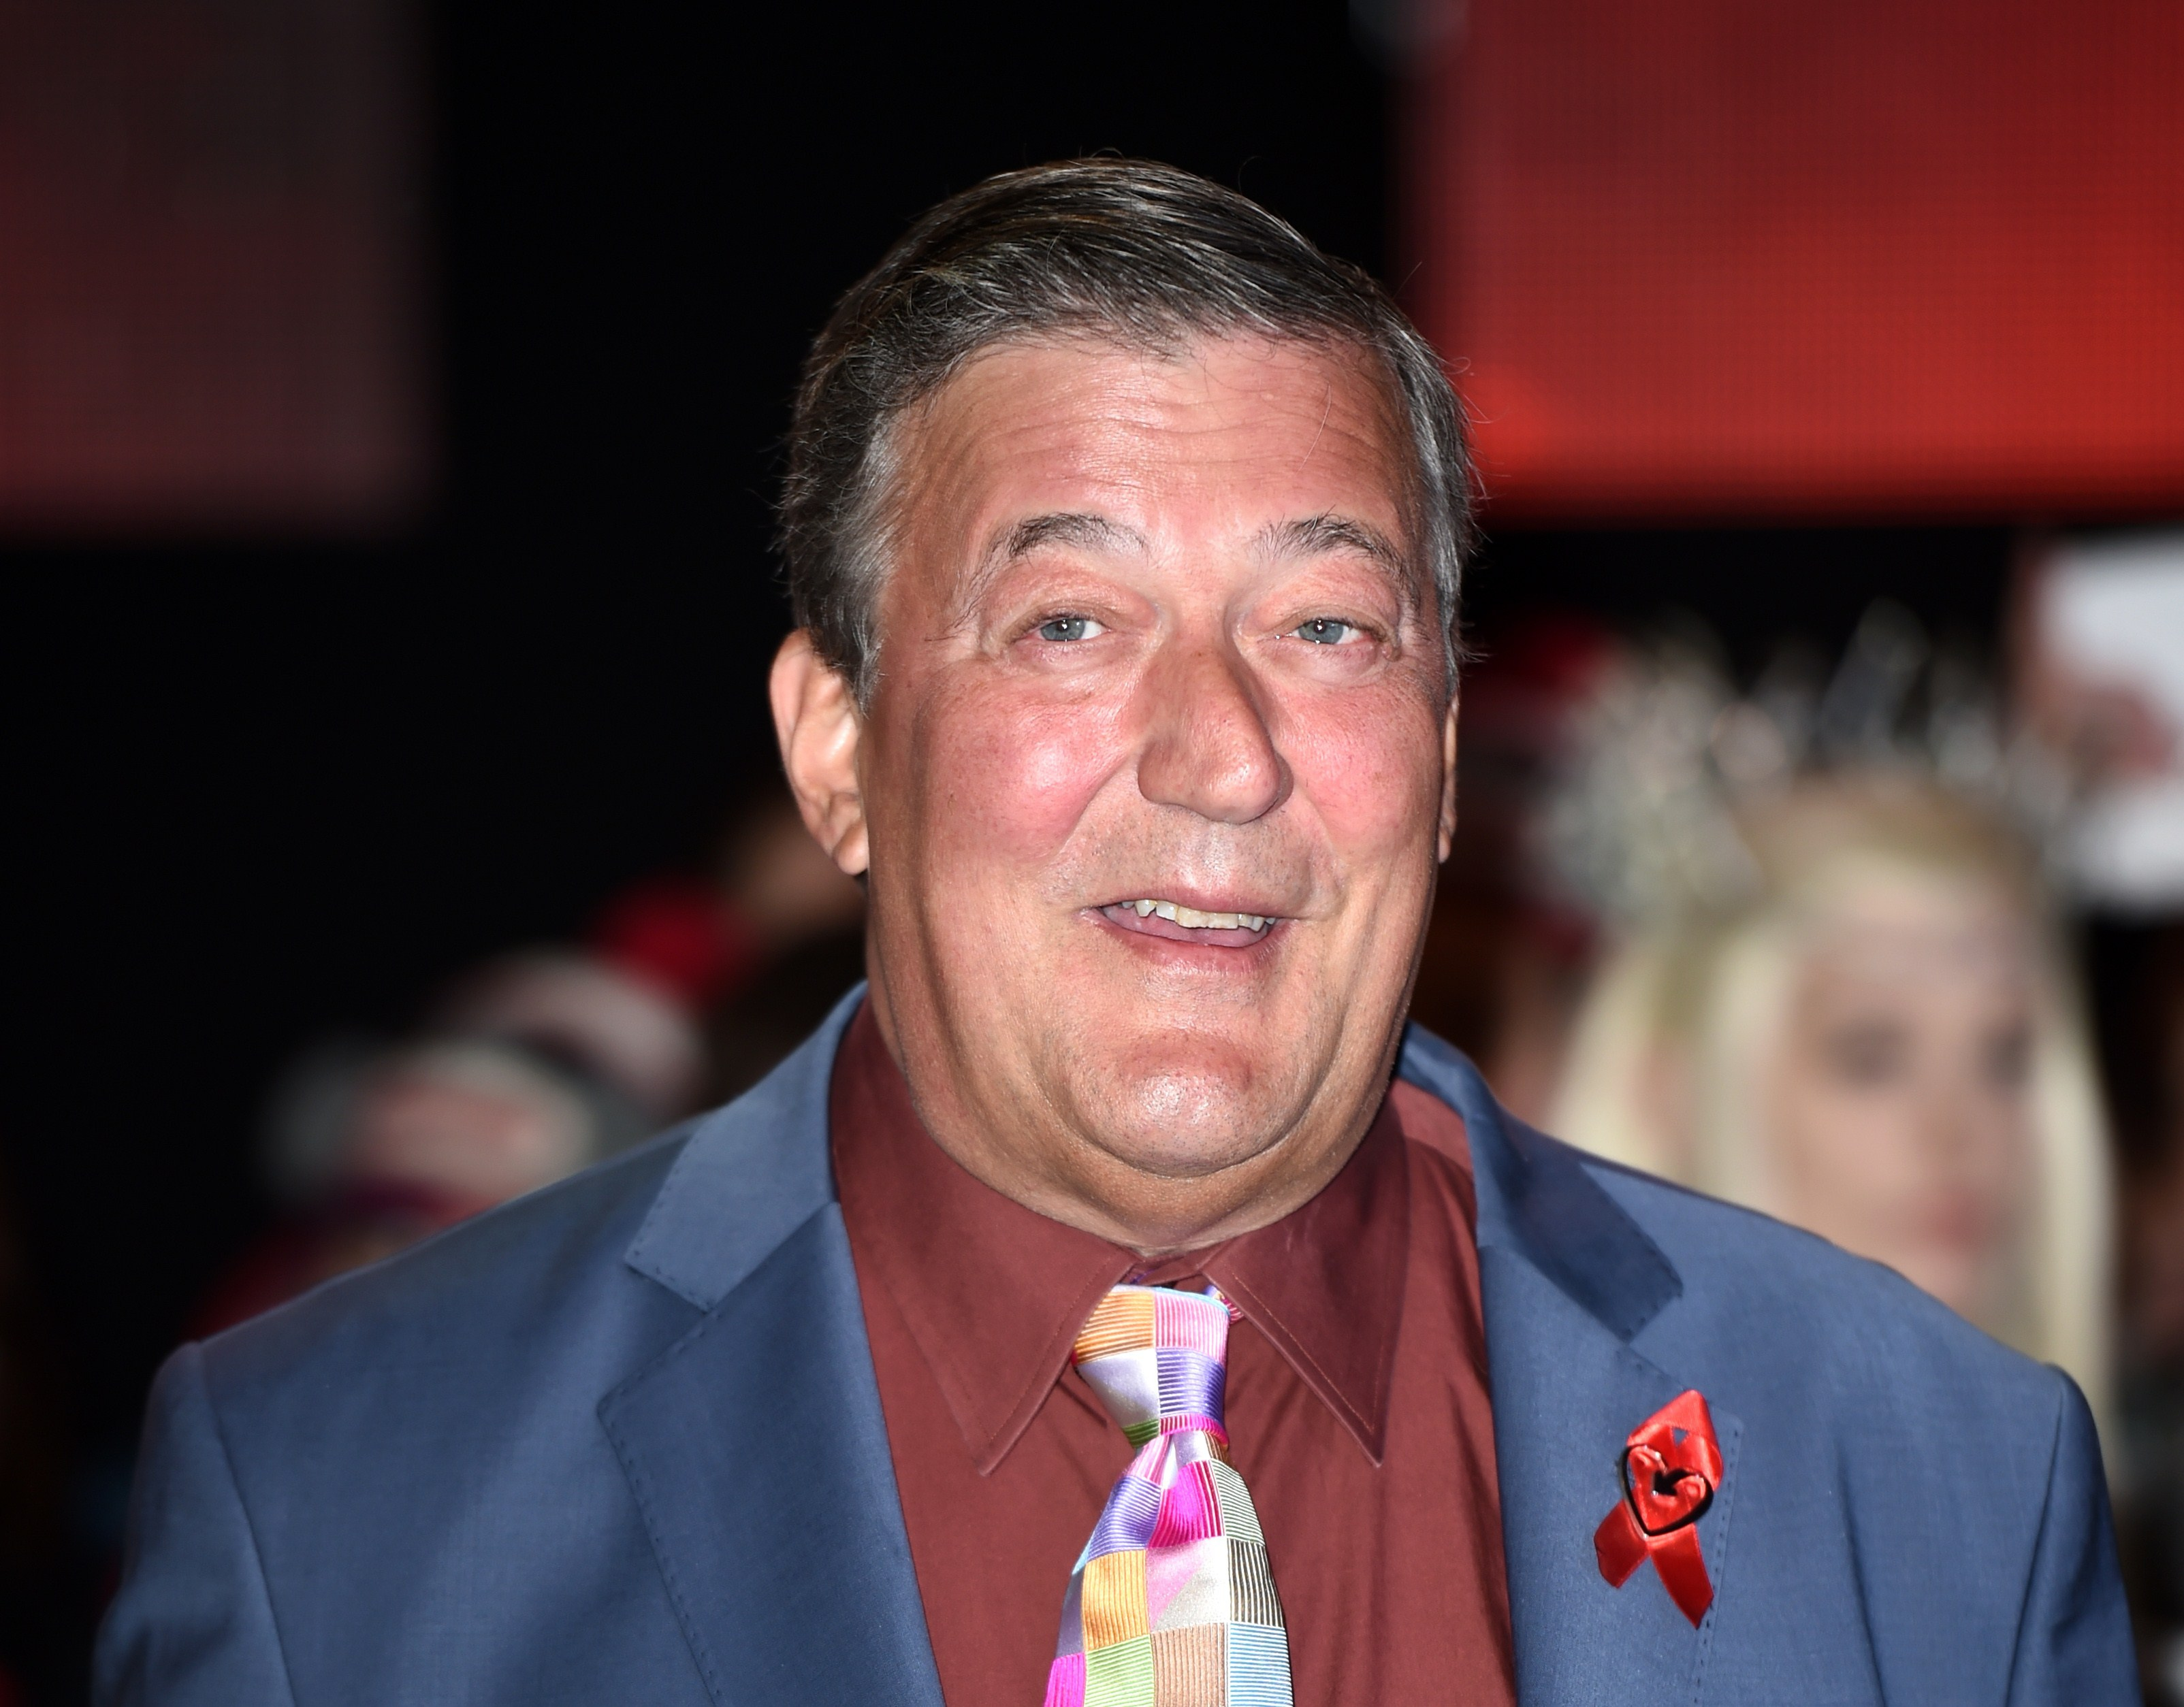 Stephen Fry Photos